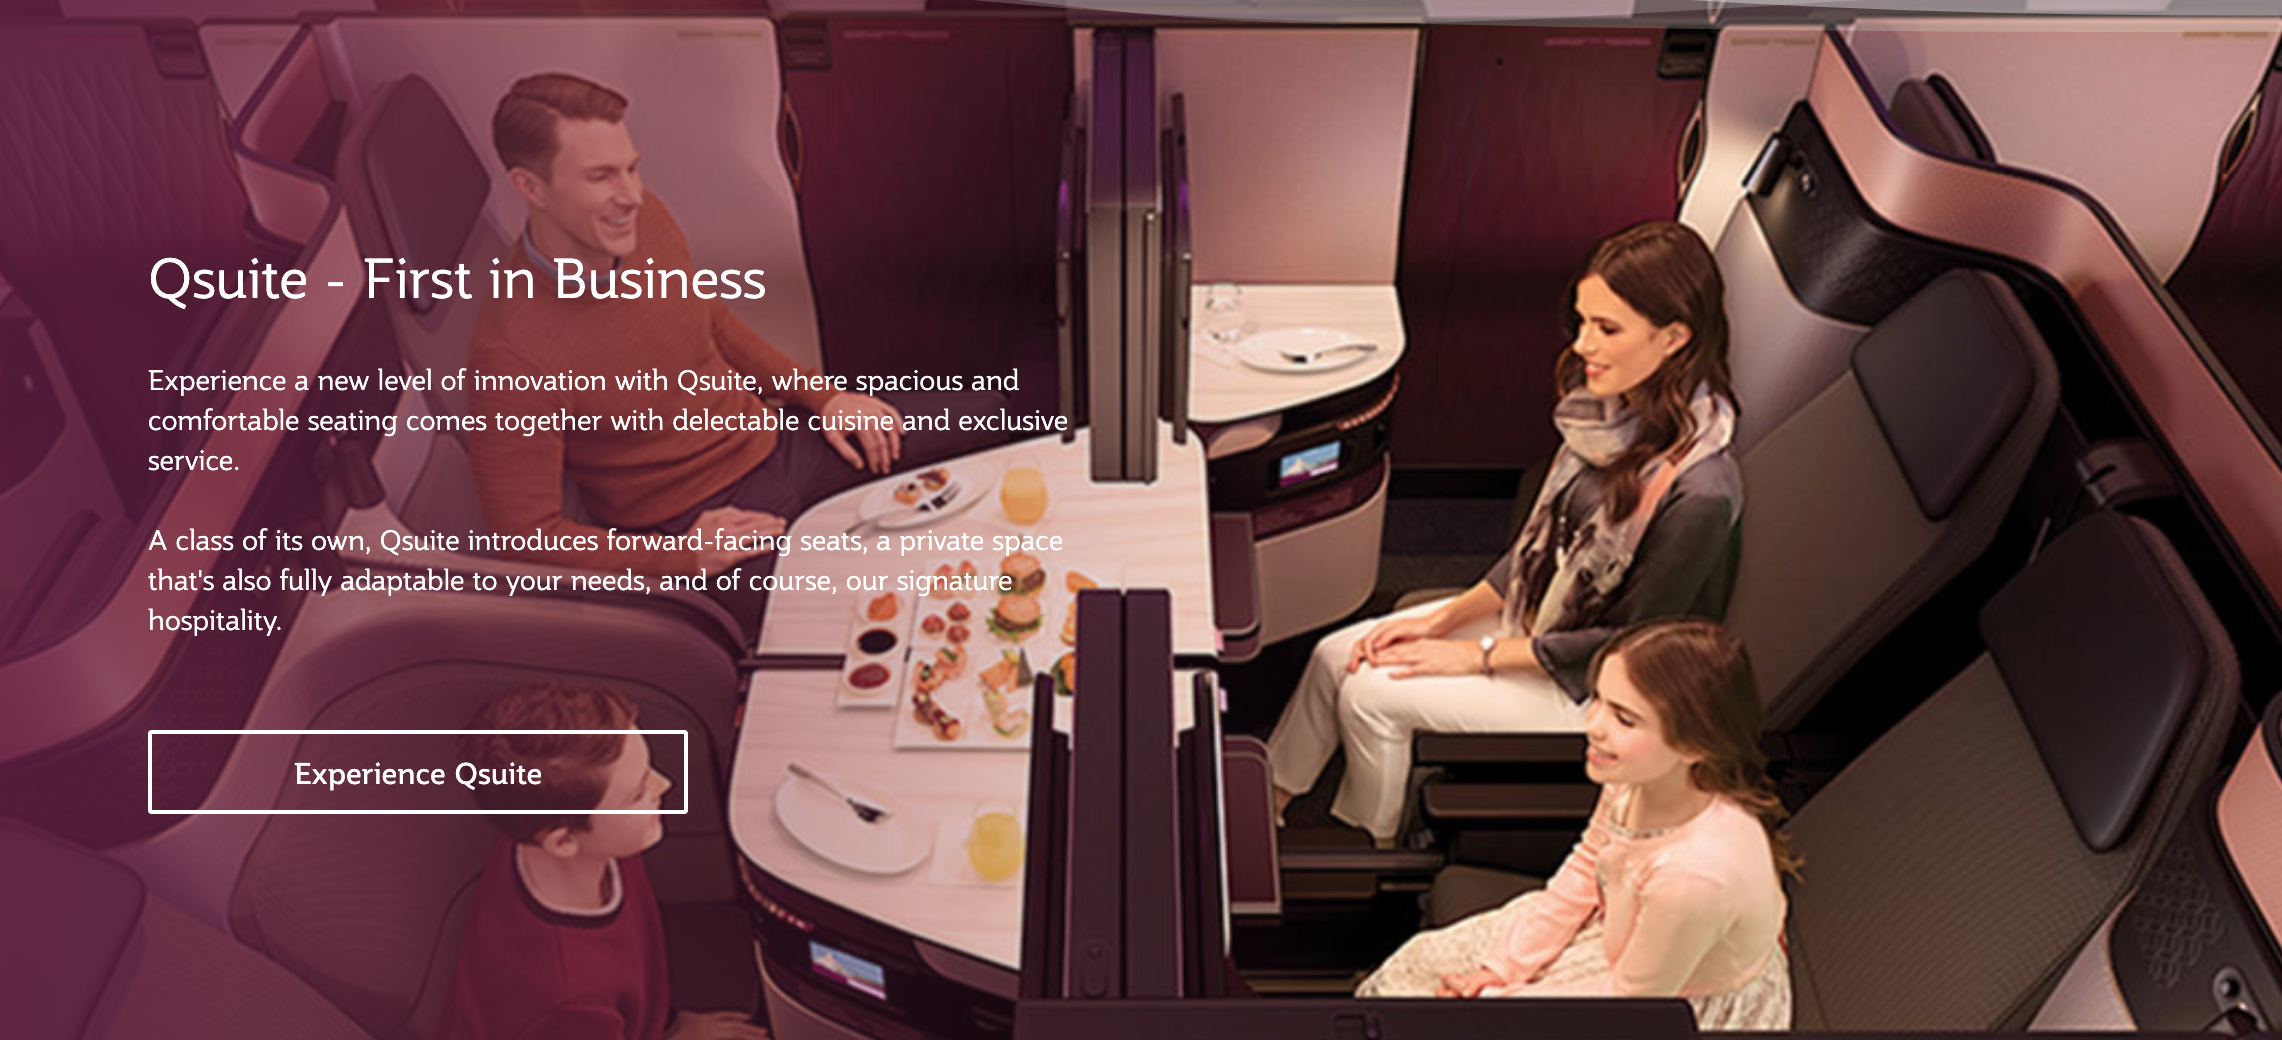 Qsuites are fully enclosed and can be combined into one suite of 4 seats!